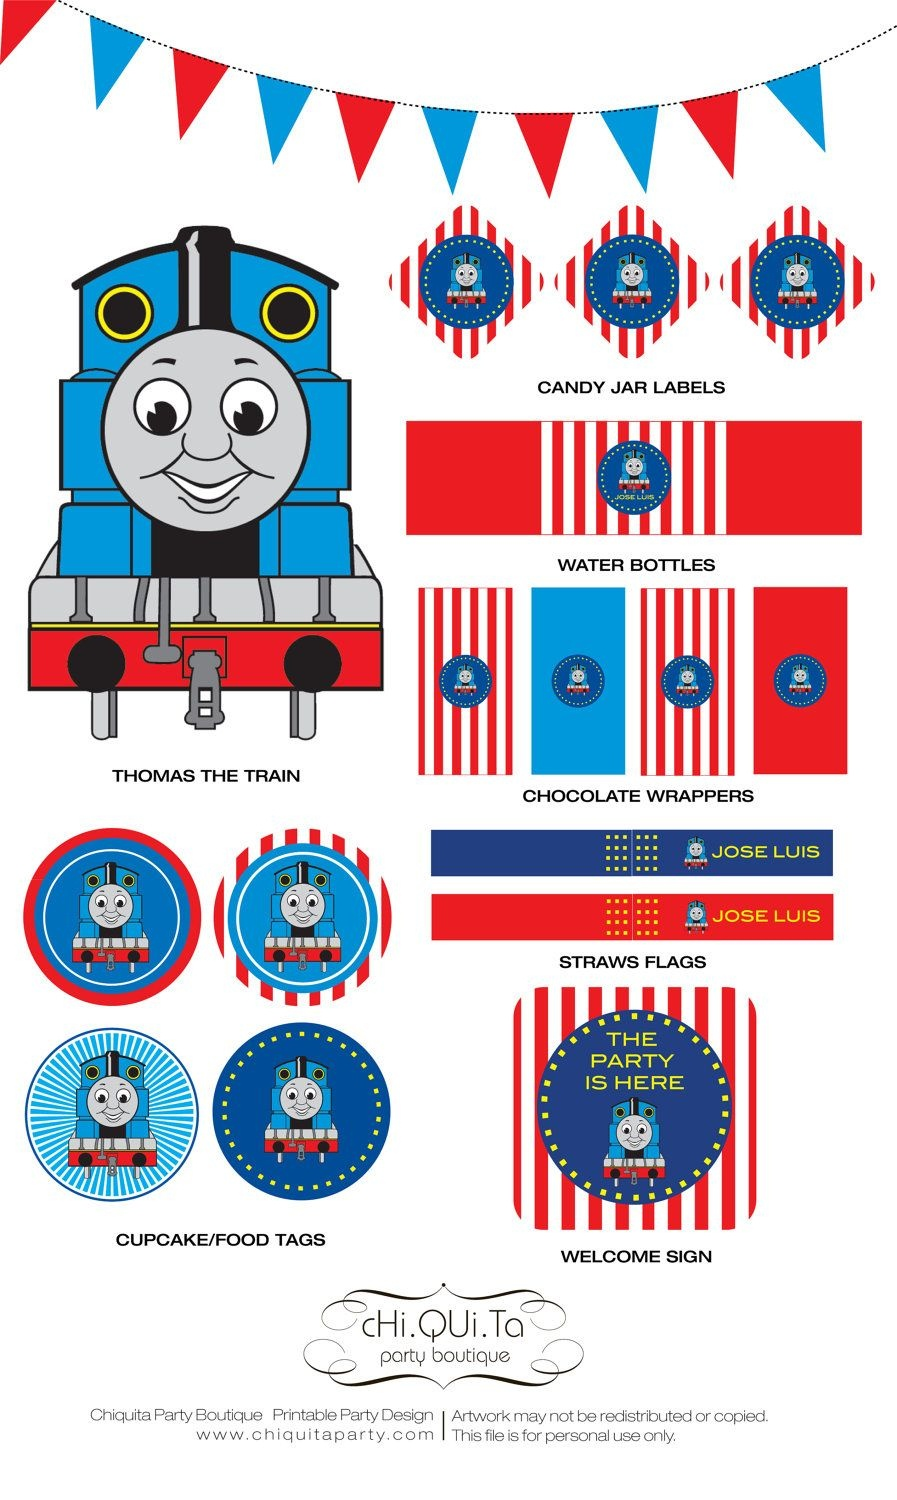 Printable Thoma's The Train Birthday Party Pdfchiquitapb The - Free Printable Thomas The Train Cupcake Toppers